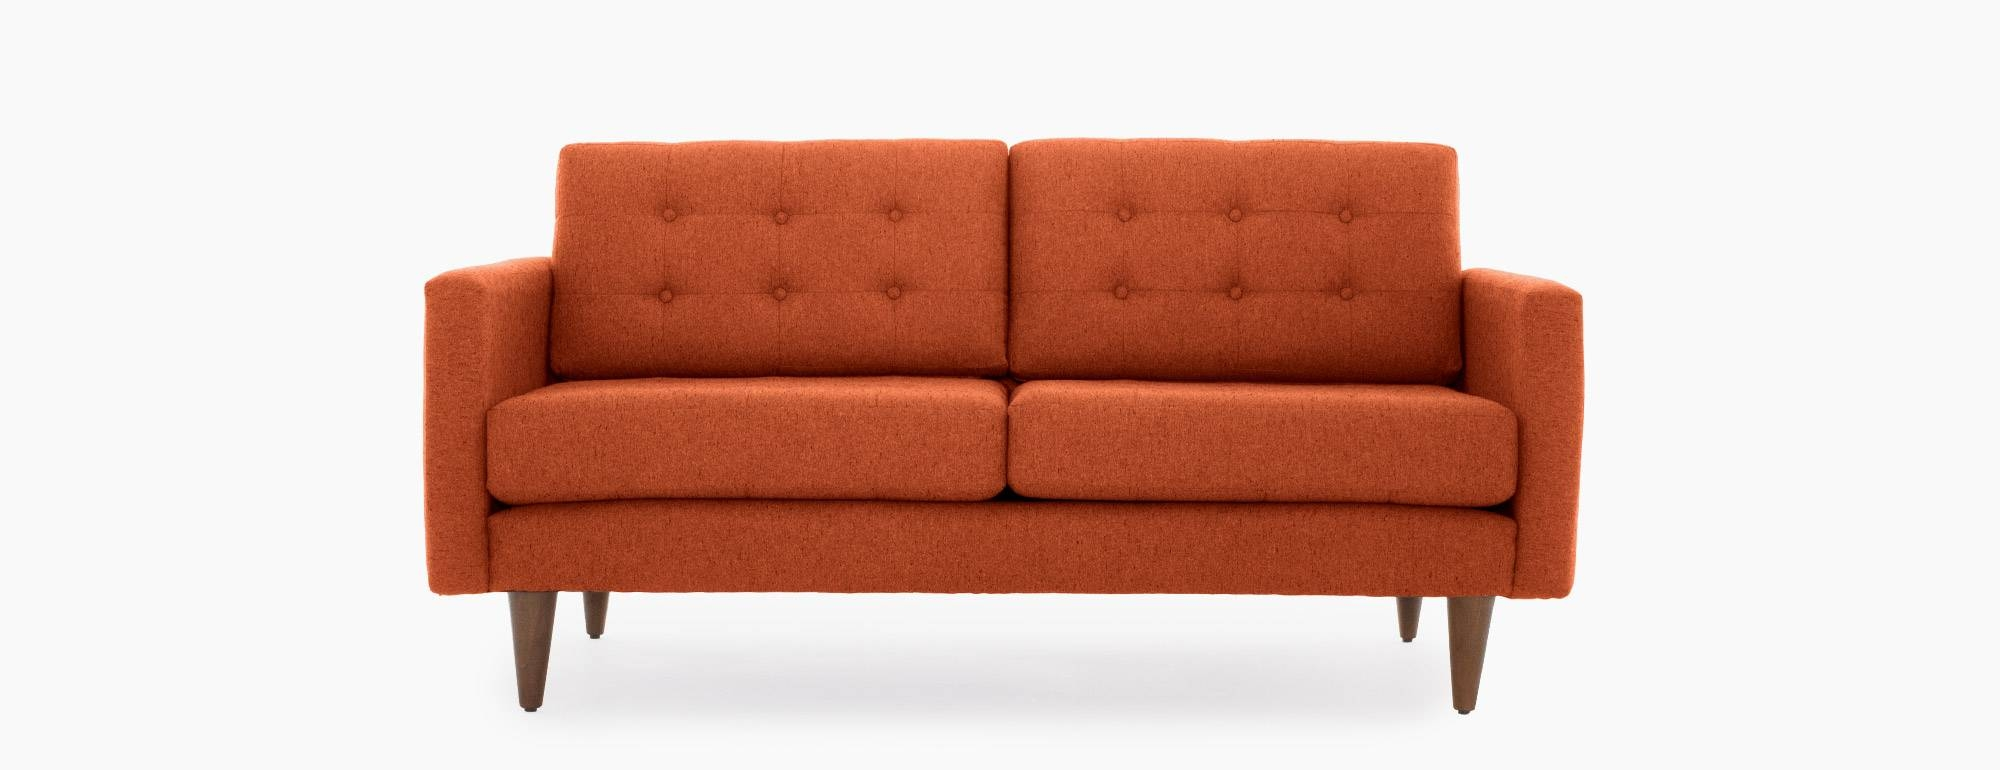 Eliot Apartment Sofa | Joybird in Elliott Sofa (Image 6 of 30)